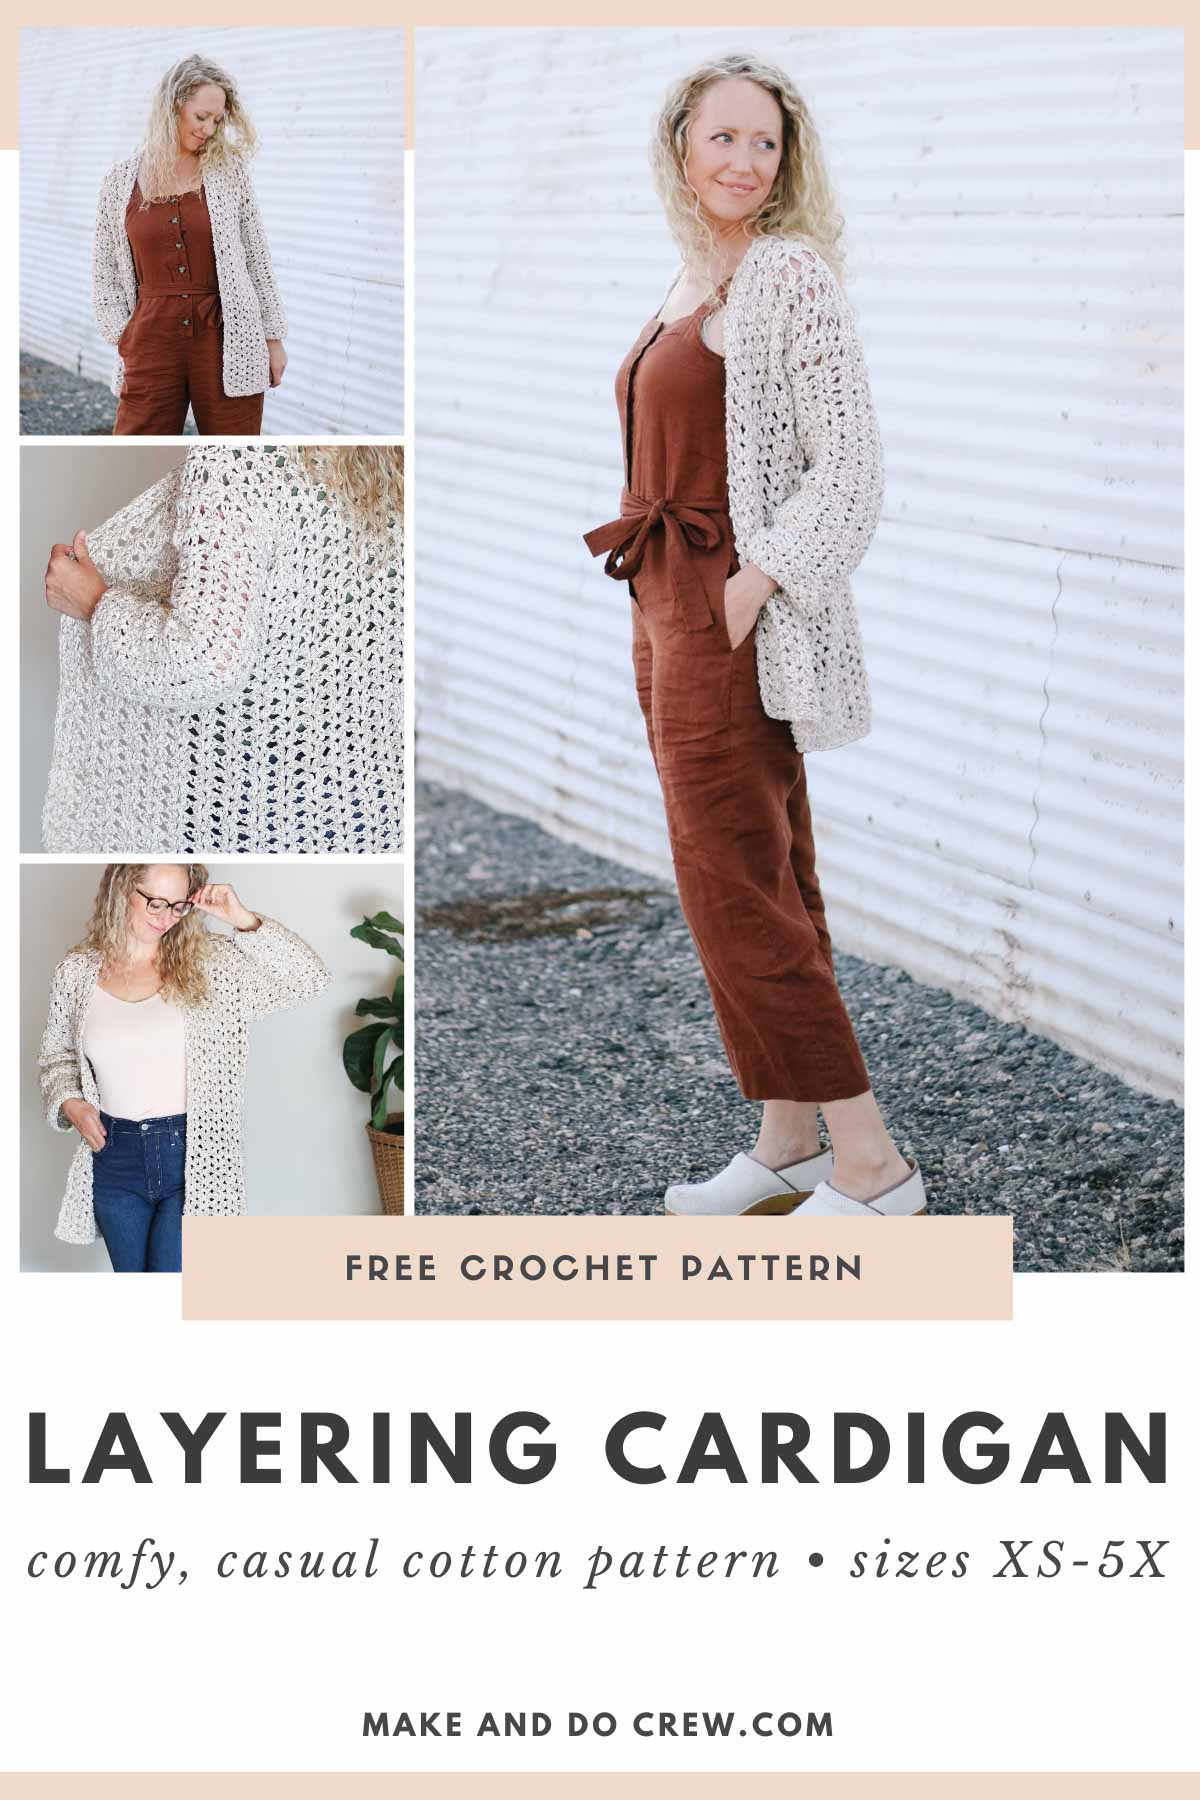 A grid of photos of a woman wearing a simple crochet jacket made with the iris stitch and Lion Brand Twisted Cotton Blend yarn.